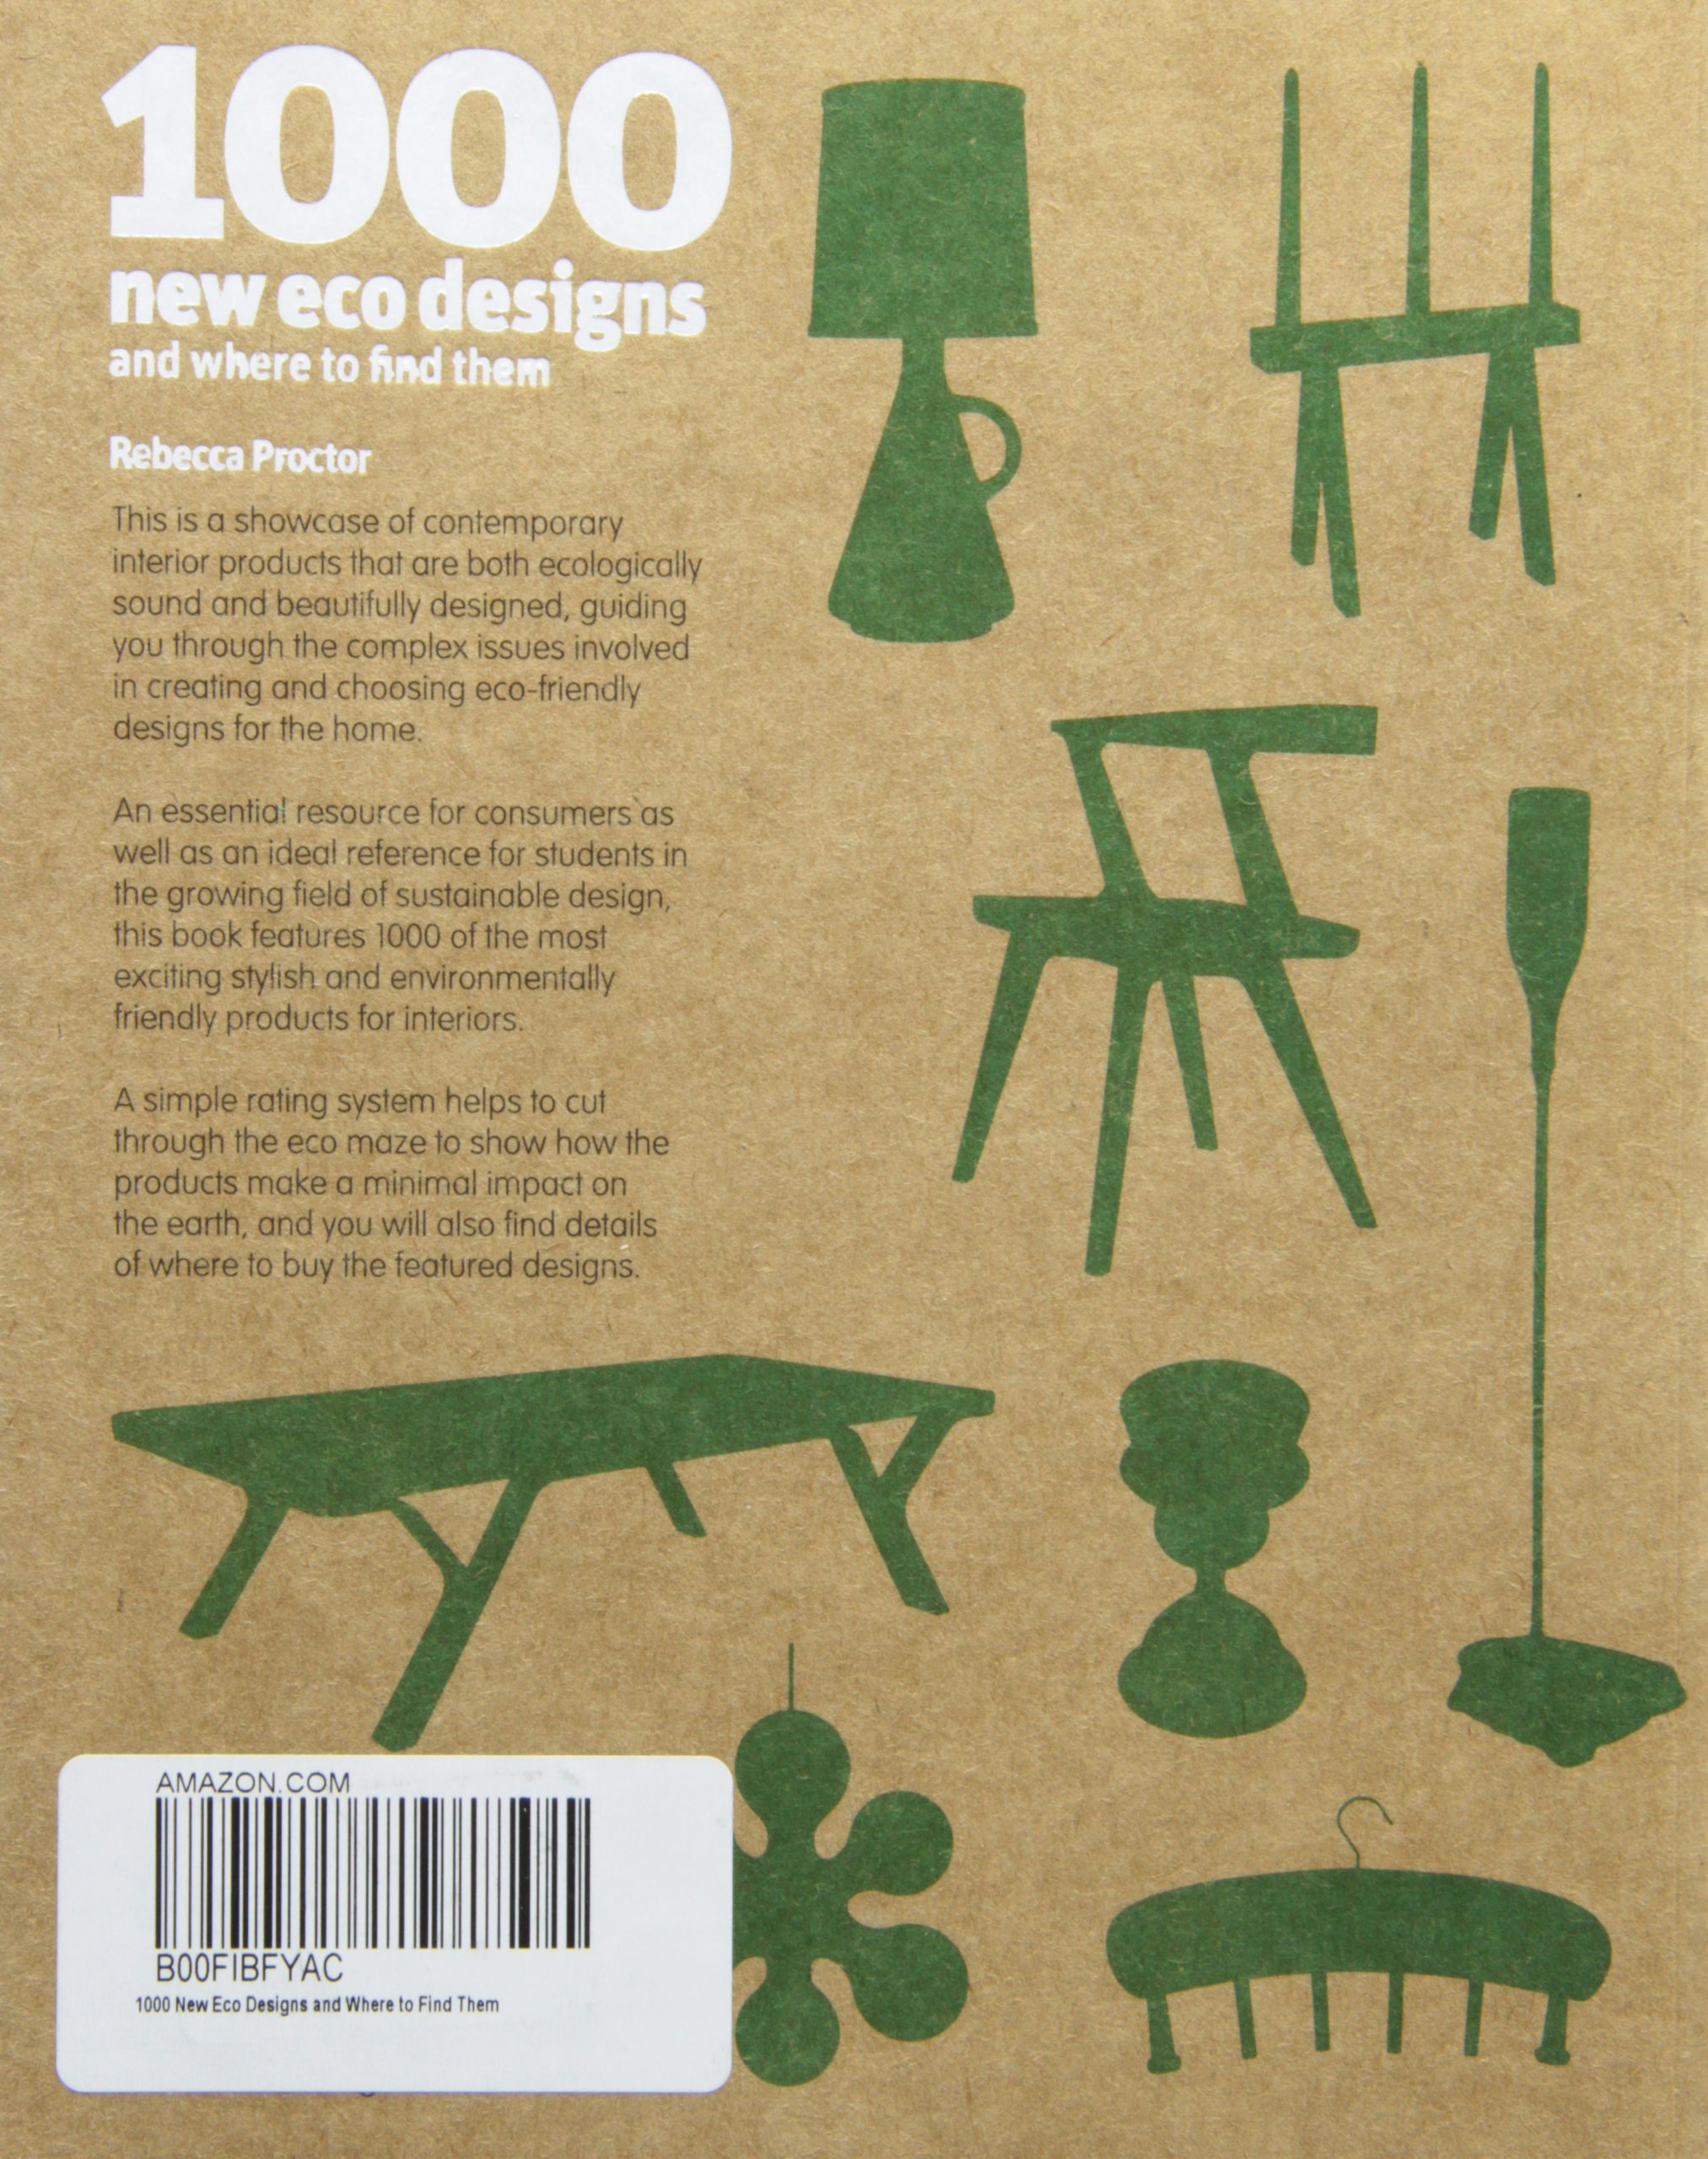 1000 New Eco Designs and Where to Find Them: Amazon.ca: Rebecca Proctor:  Books